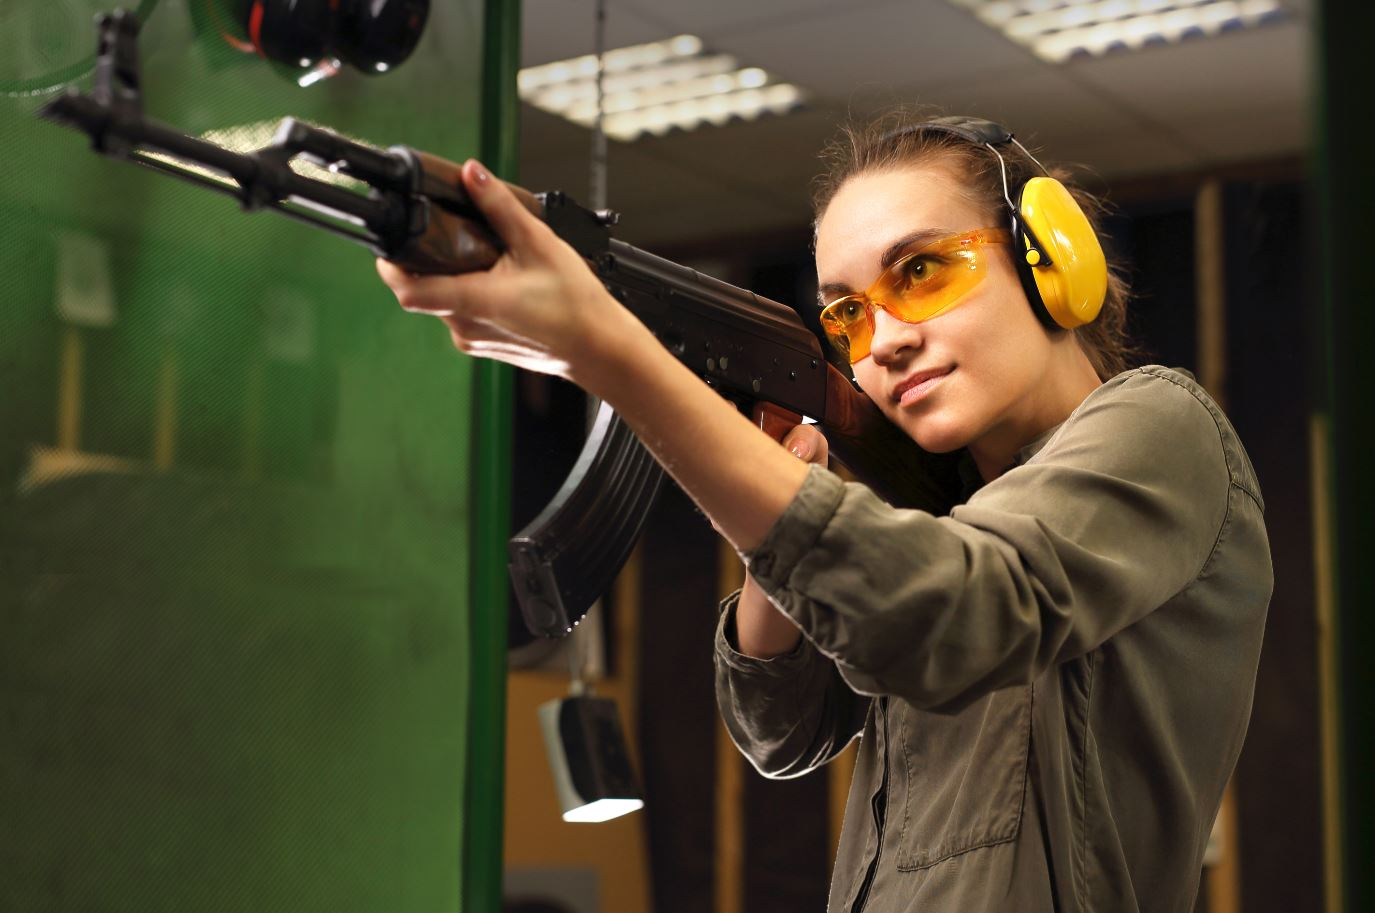 Girl Shooting at Range